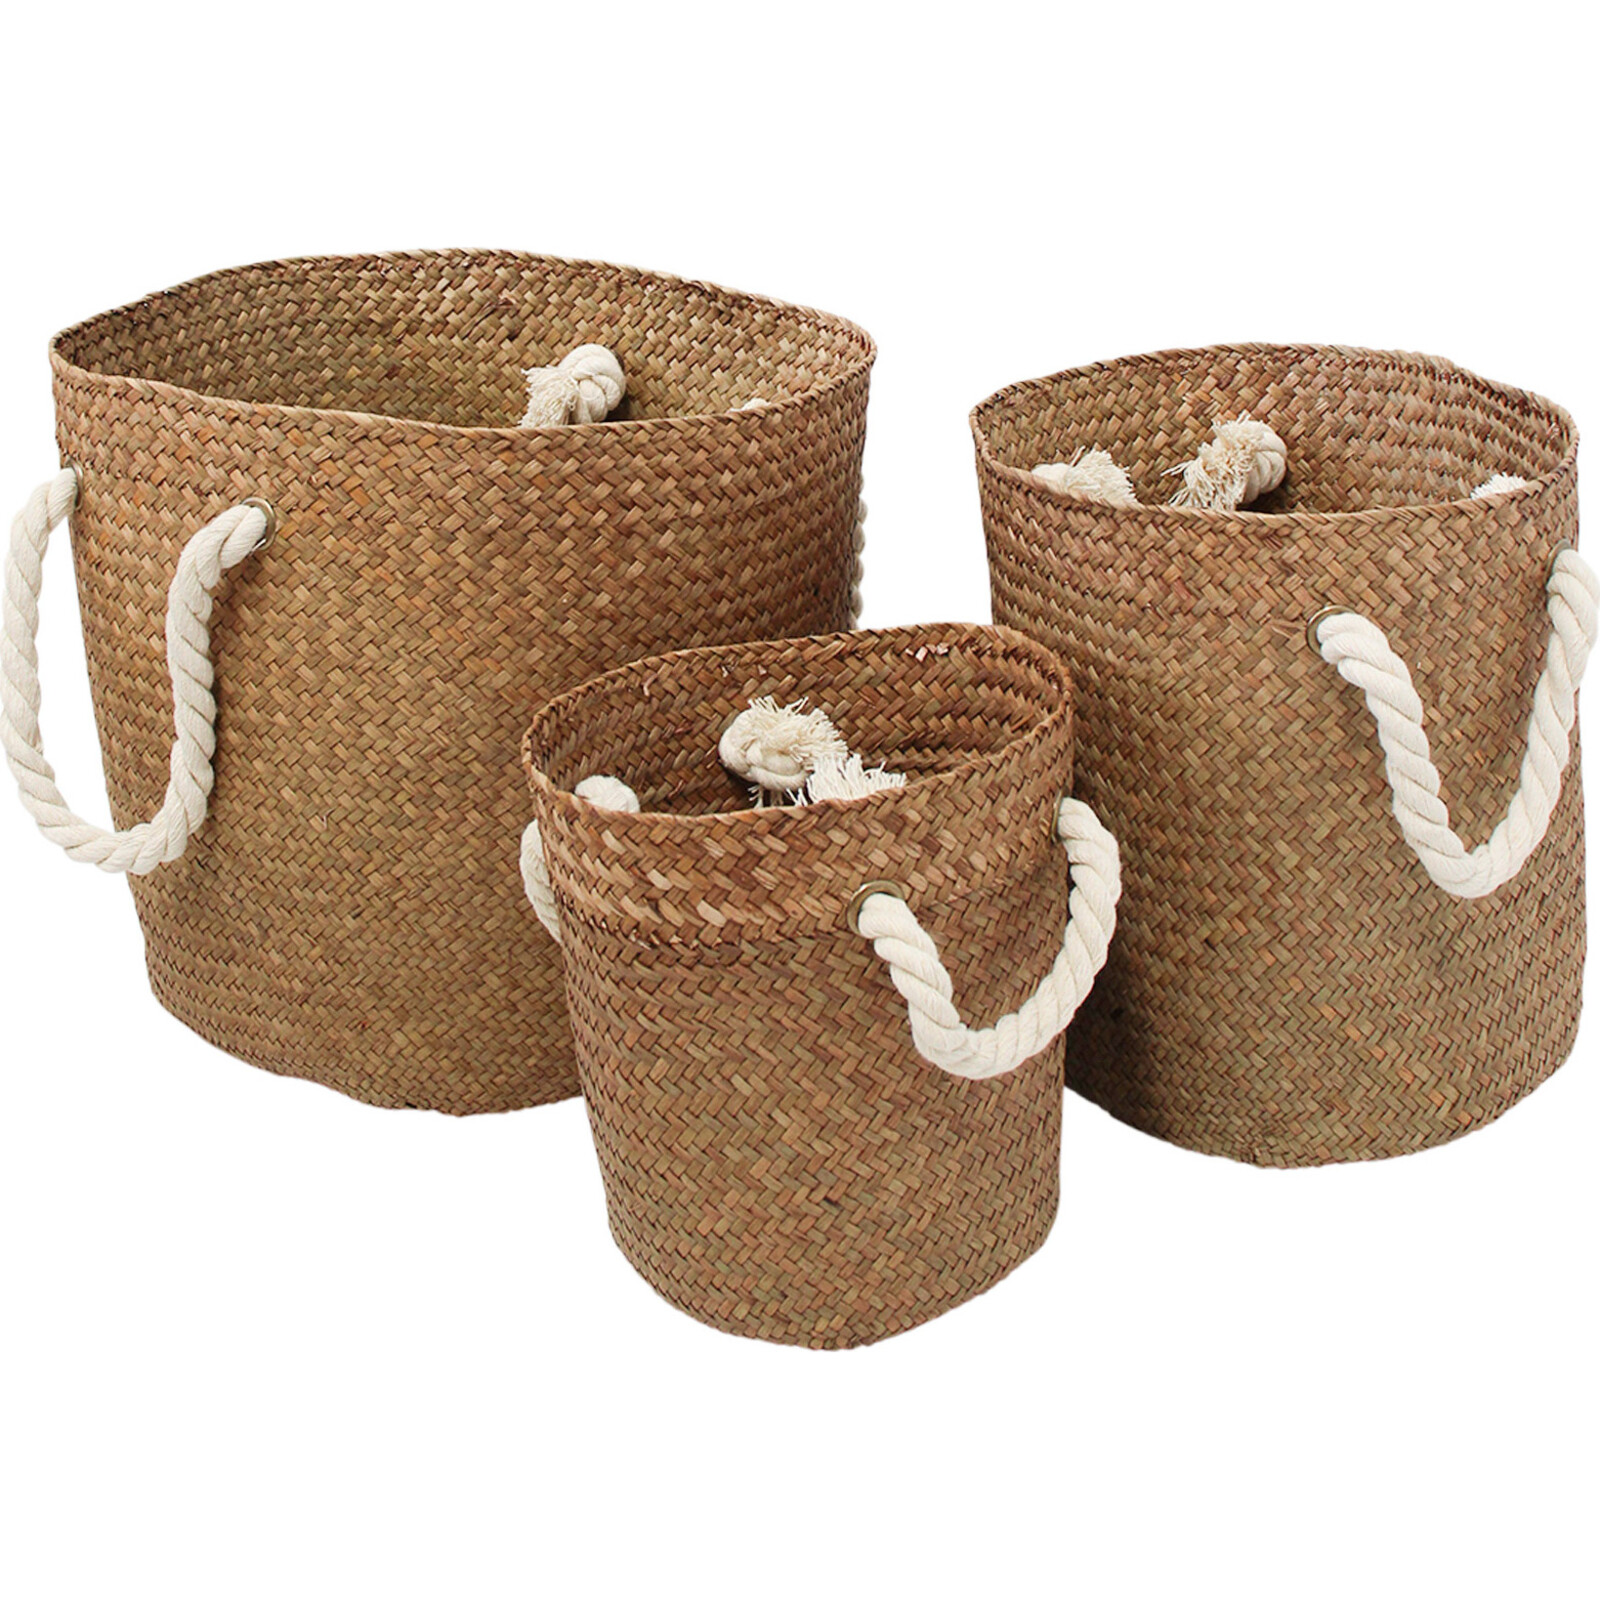 Woven Baskets S/3 Rope Handle